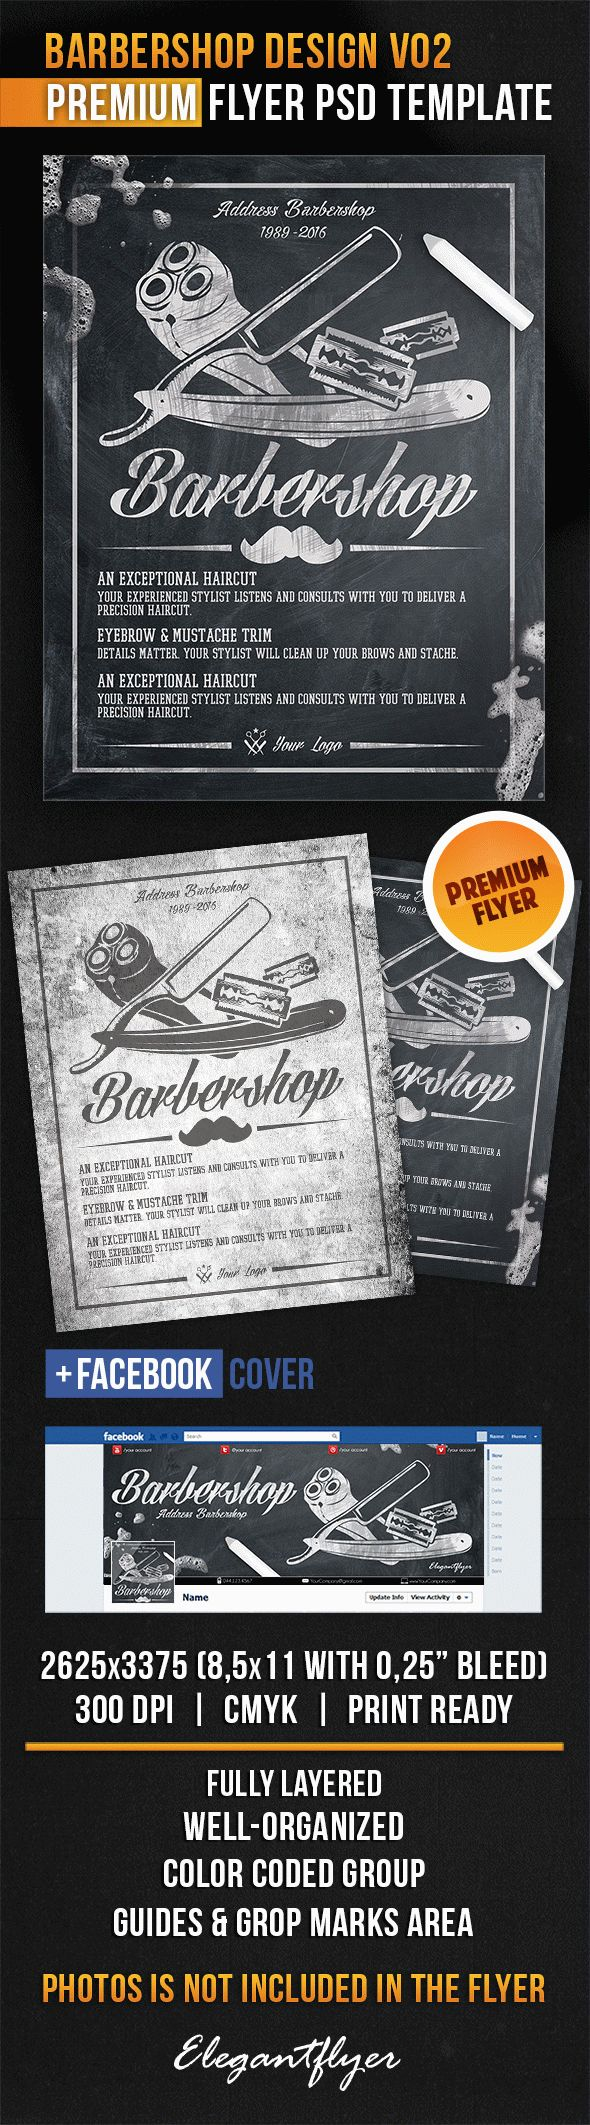 Barbershop Design V02 – Flyer PSD Template + Facebook Cover